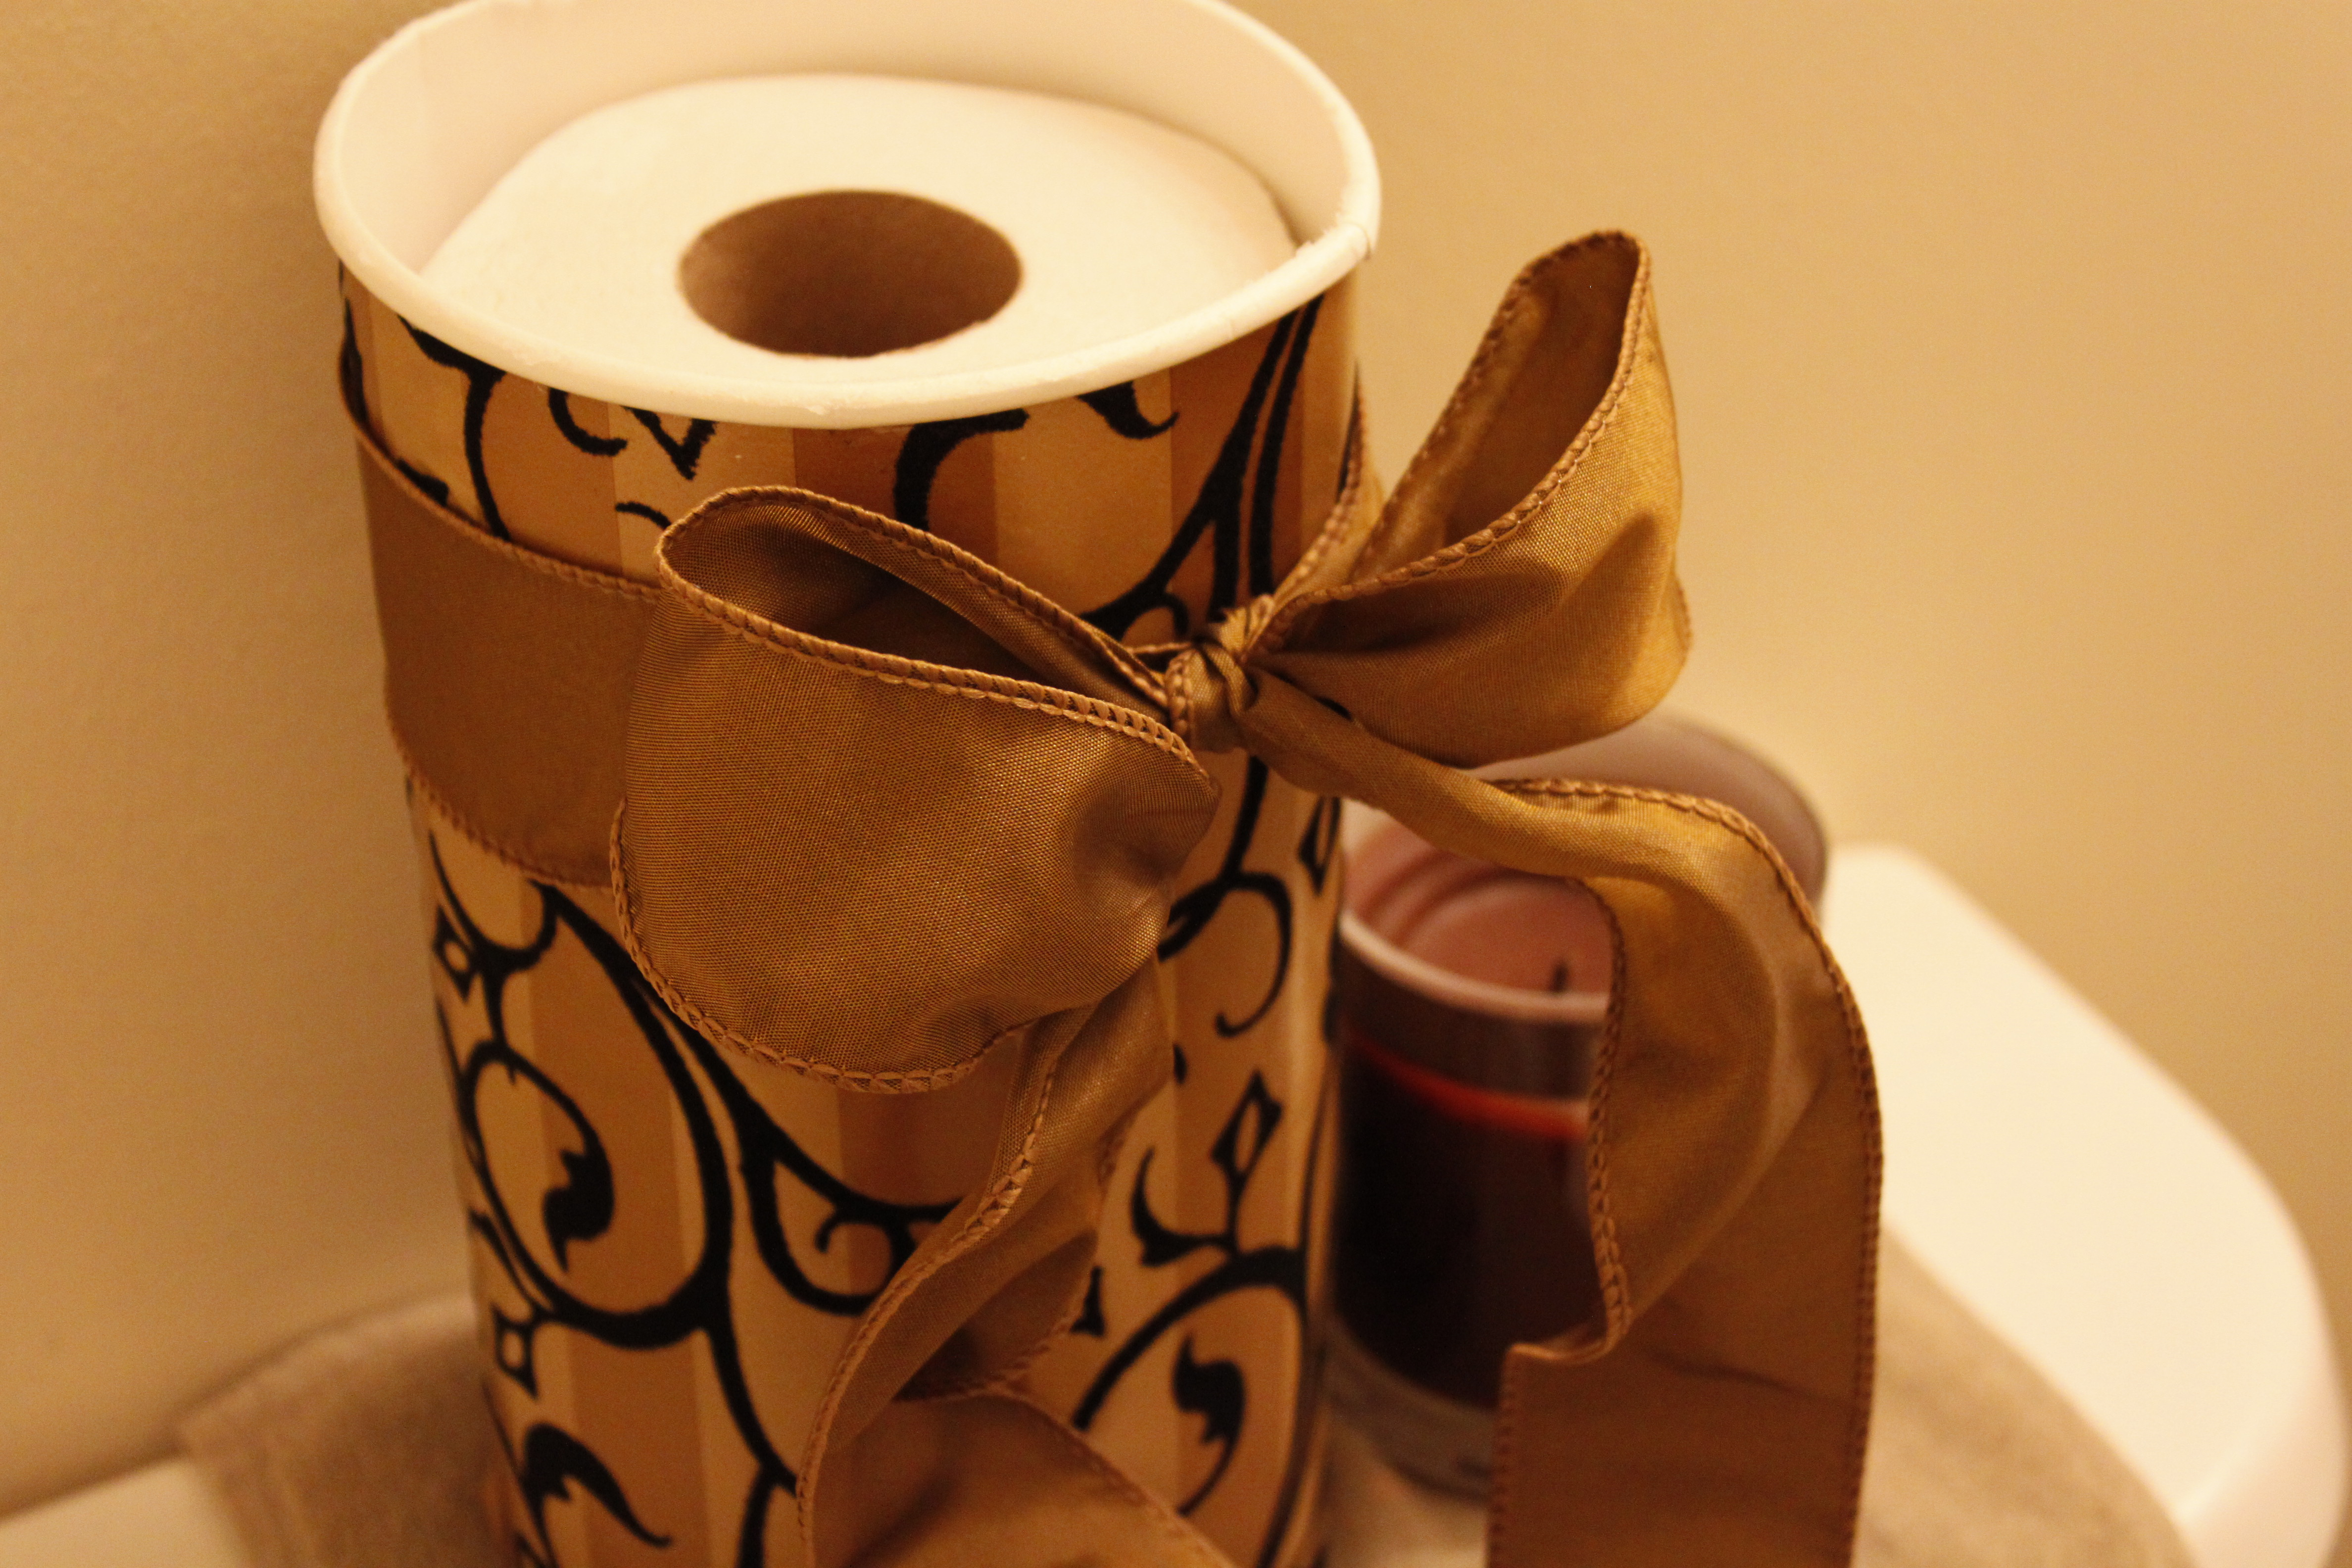 From Oatmeal Canister To Toilet Paper Dispenser